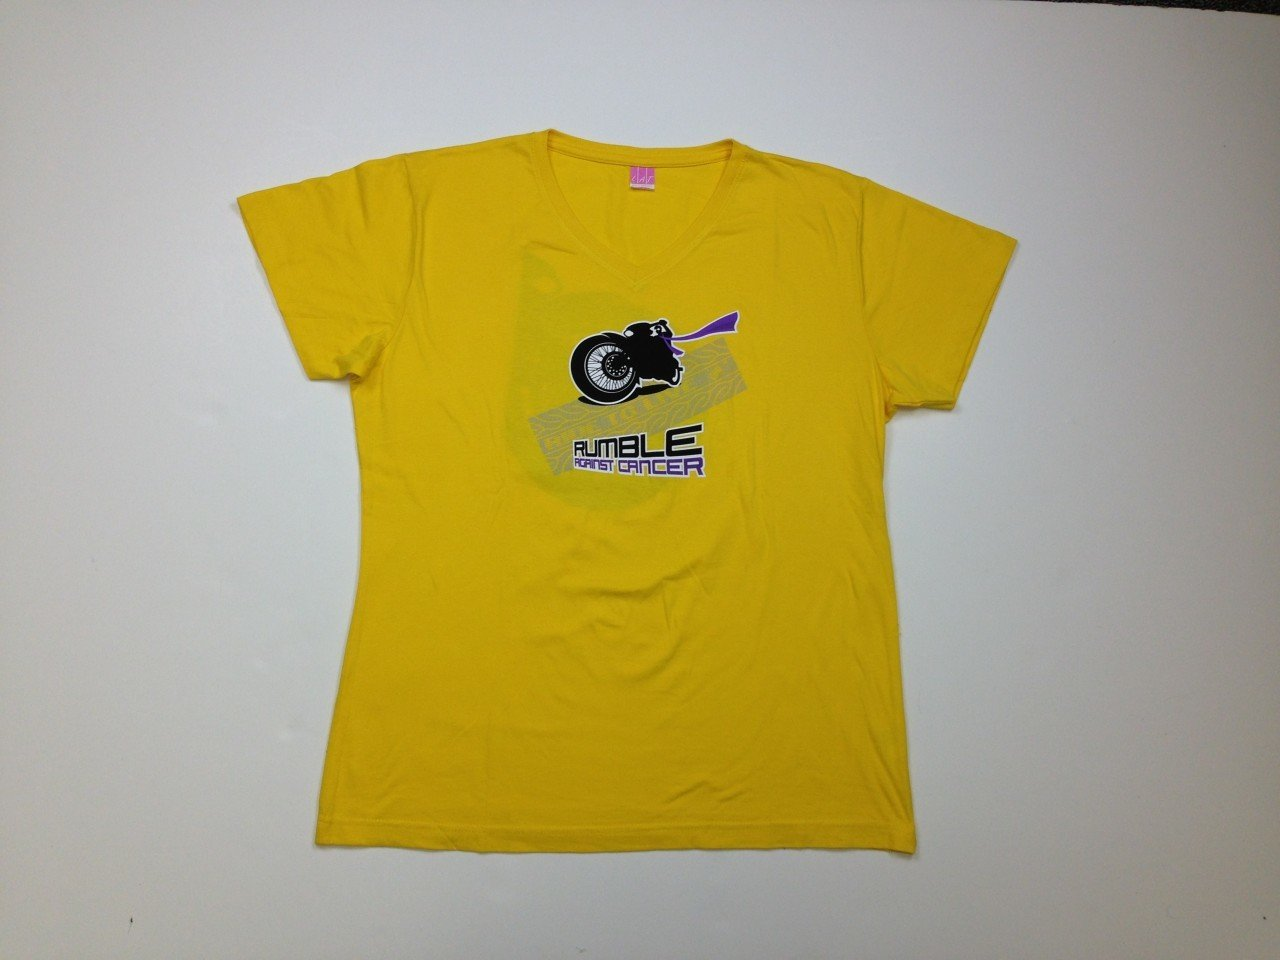 Yeller Rumble Shirt 00001